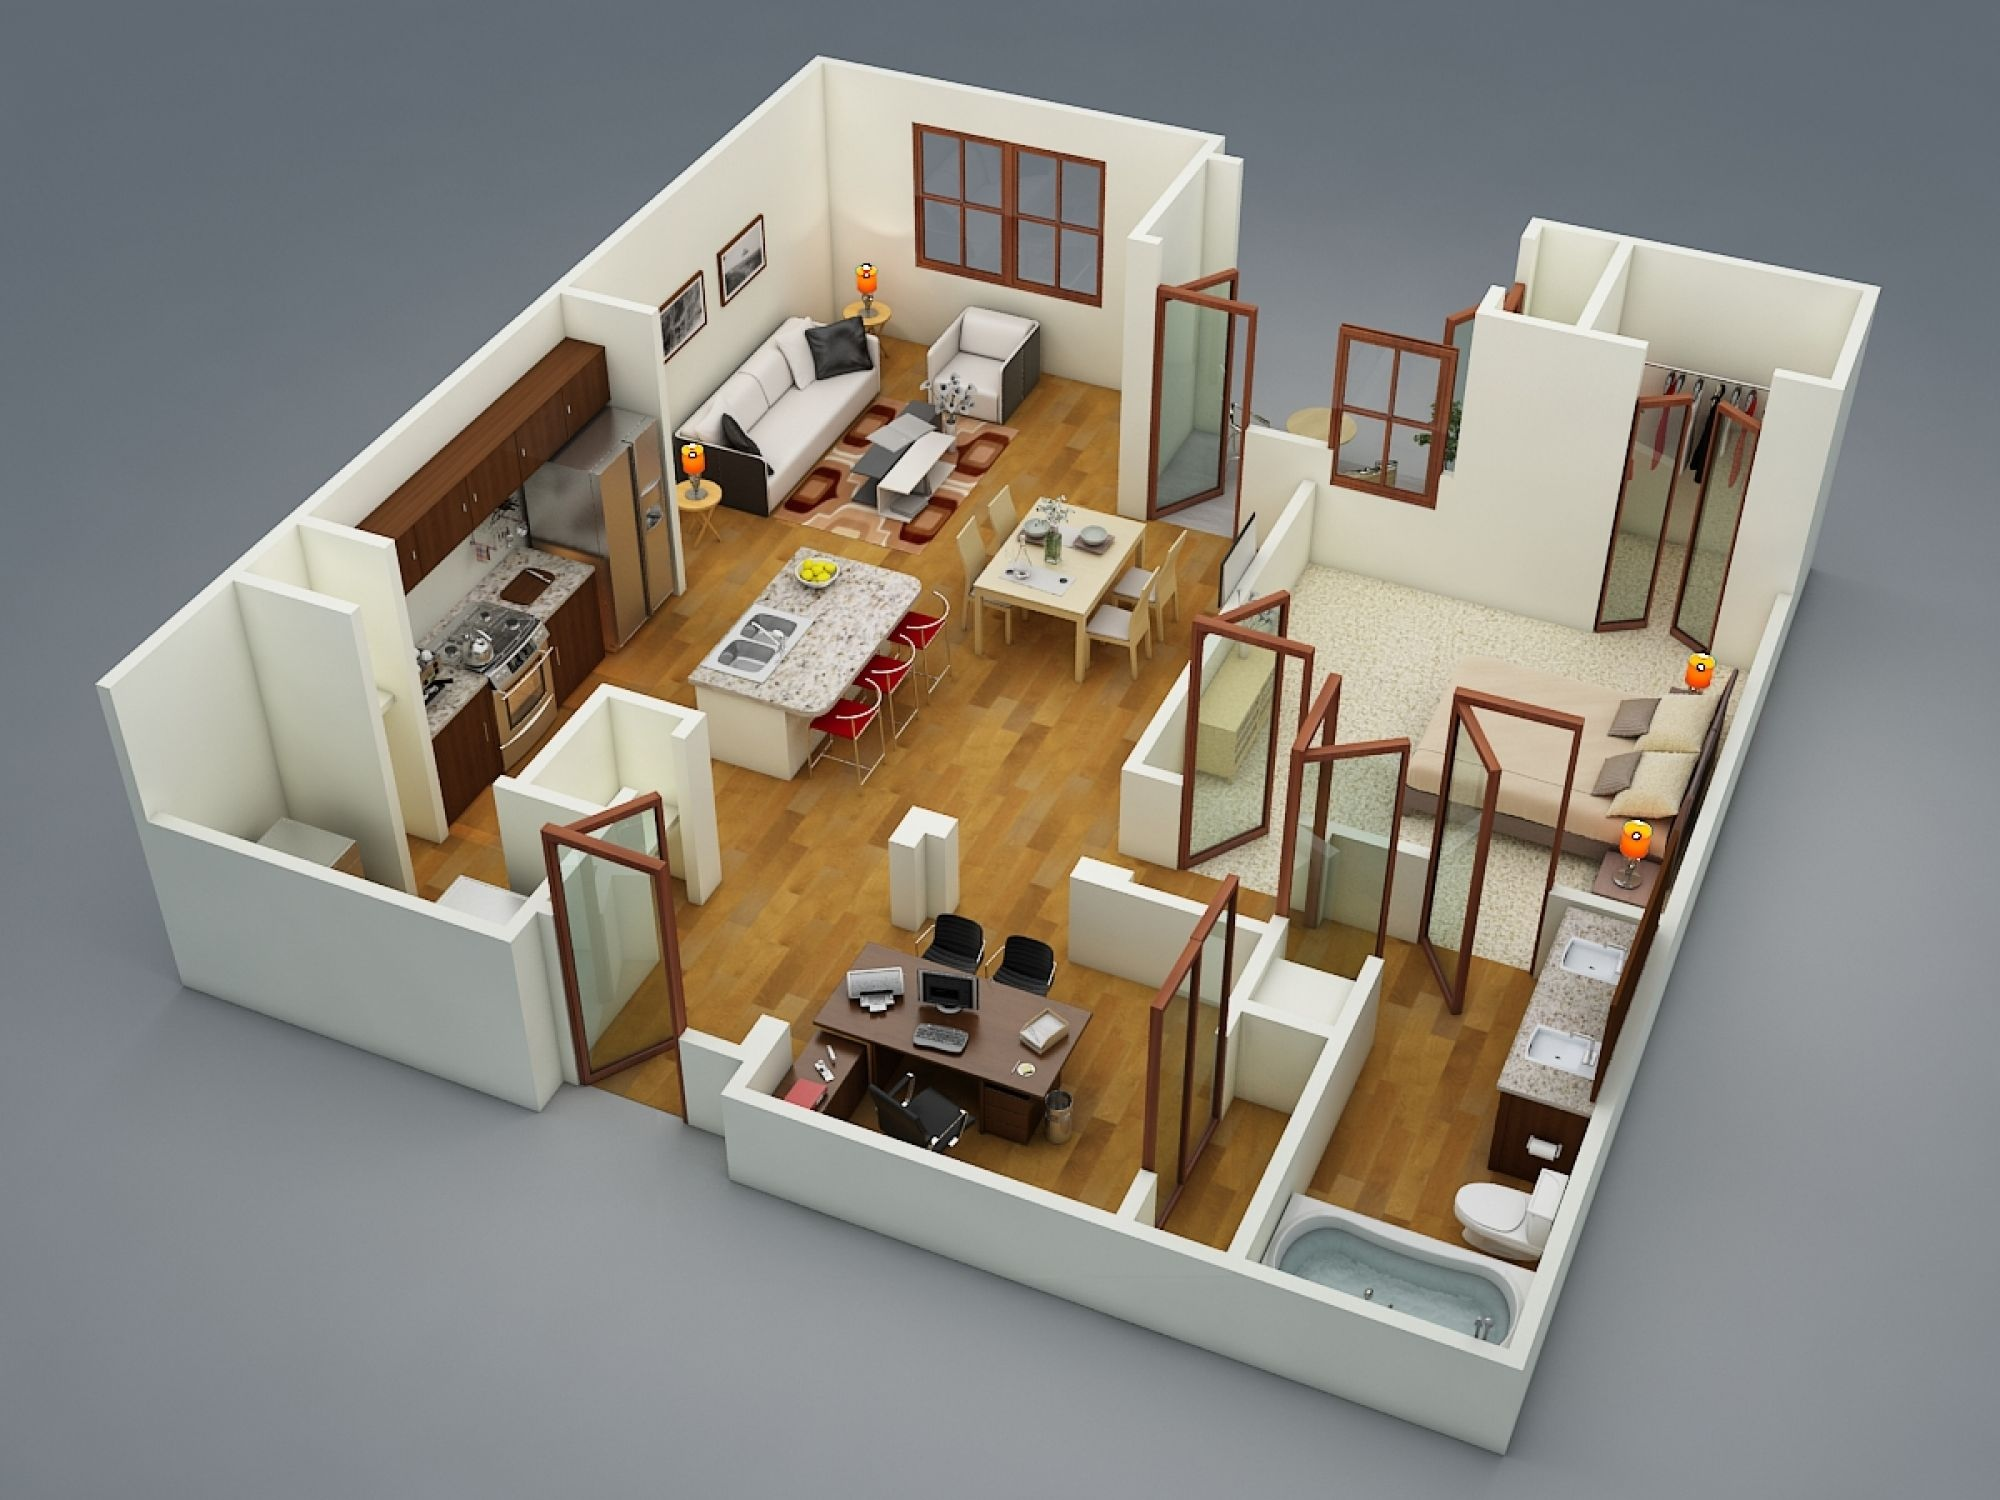 apartments design plans. Plain Design Inside Apartments Design Plans P